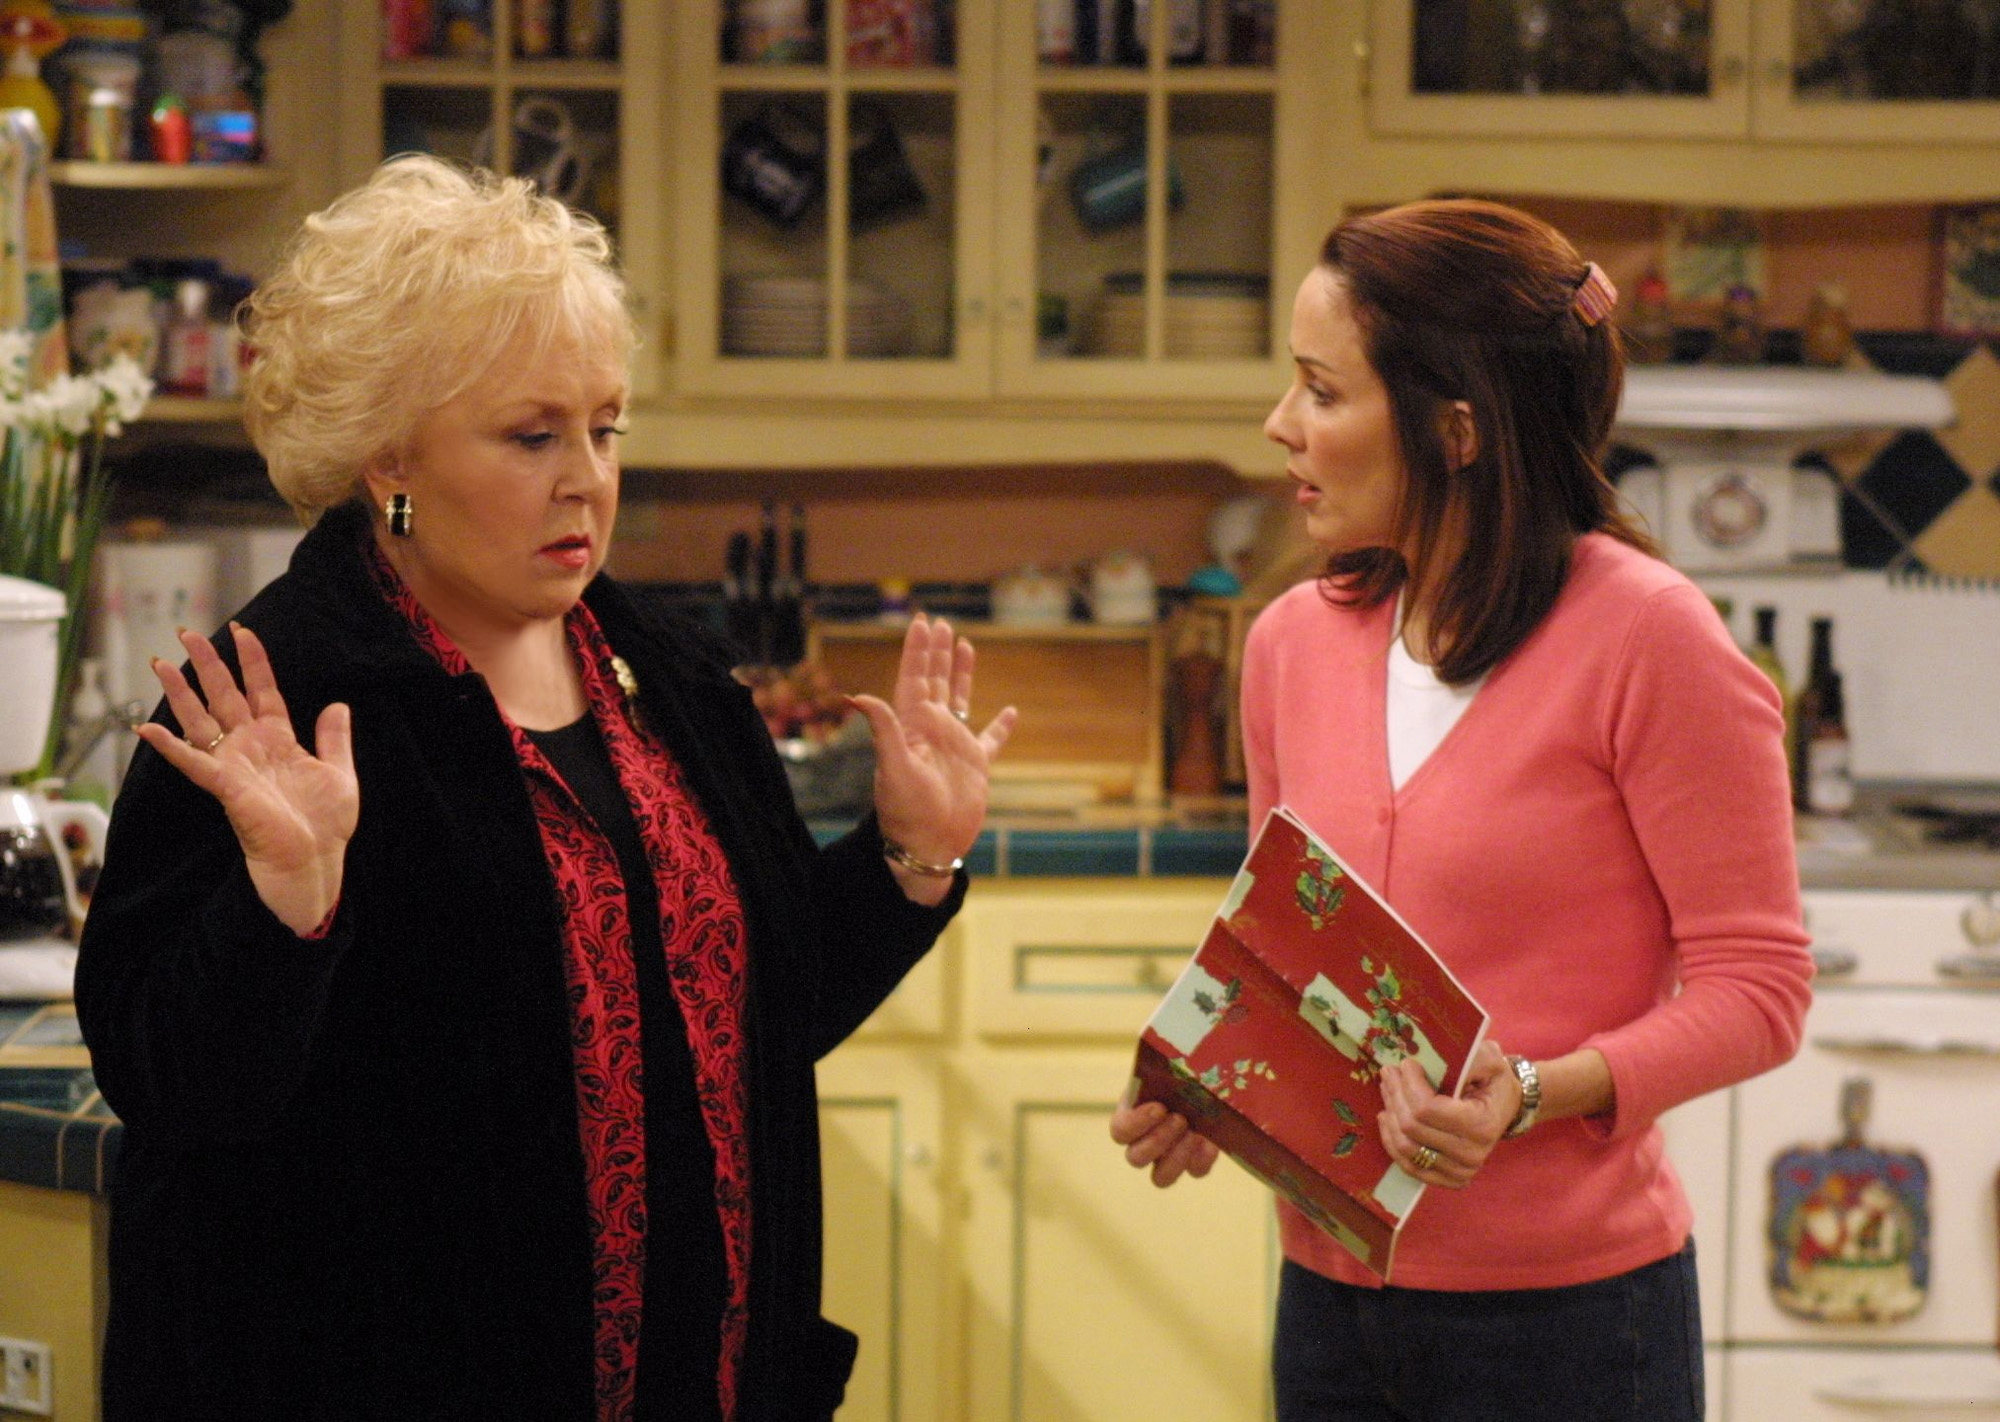 """Deborah (Patricia Heaton), right, often had a contentious relationship with her mother-in-law Marie (Doris Roberts) on """"Everybody Loves Raymond."""" Heaton will appear at this year's RootsTech, scheduled for Feb. 27-March 2 at the Salt Palace Convention Center."""